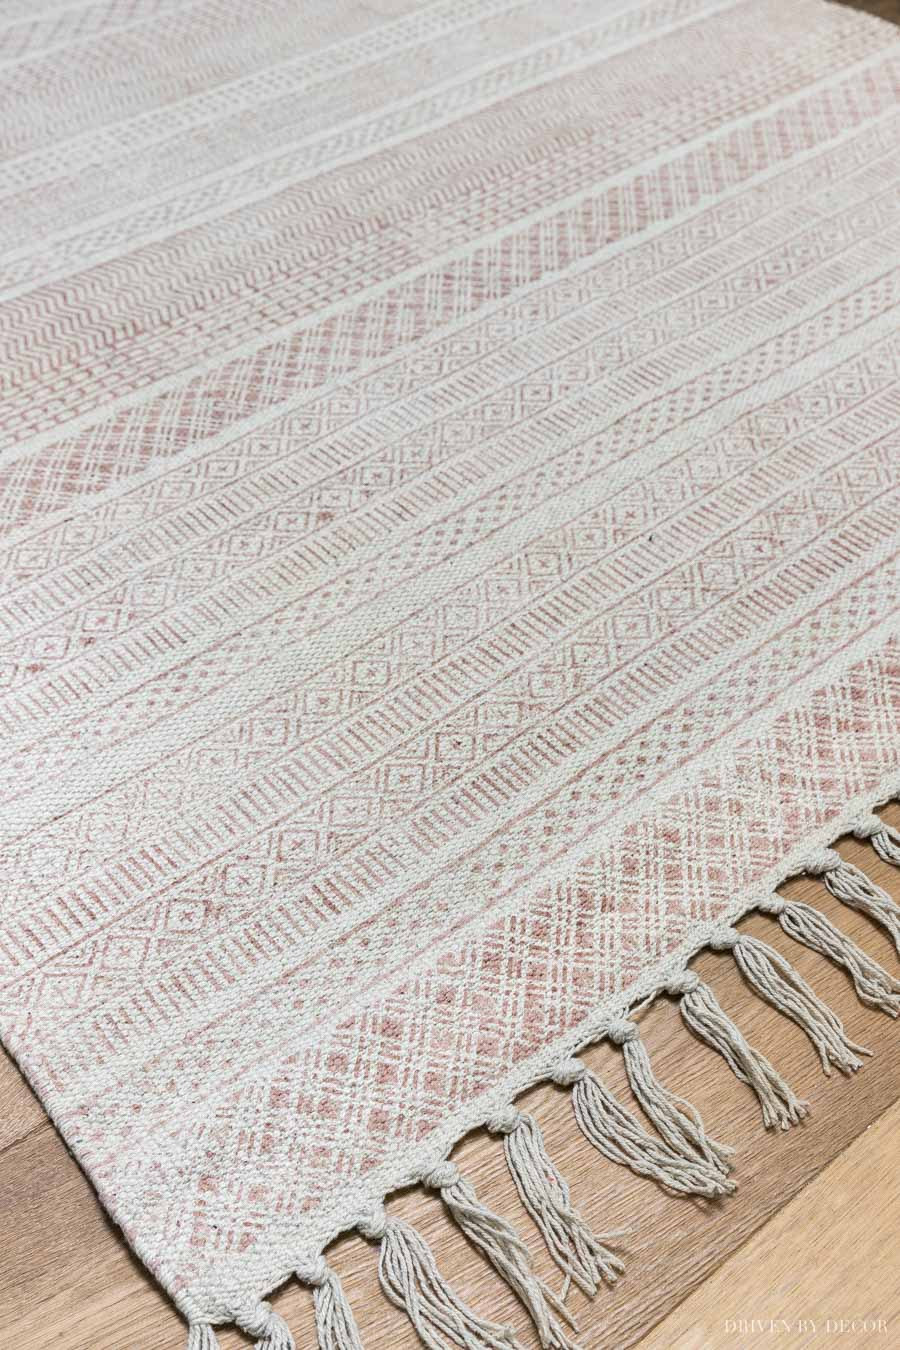 Gorgeous blush flatweave rug - perfect for a home office, entry, or kitchen!